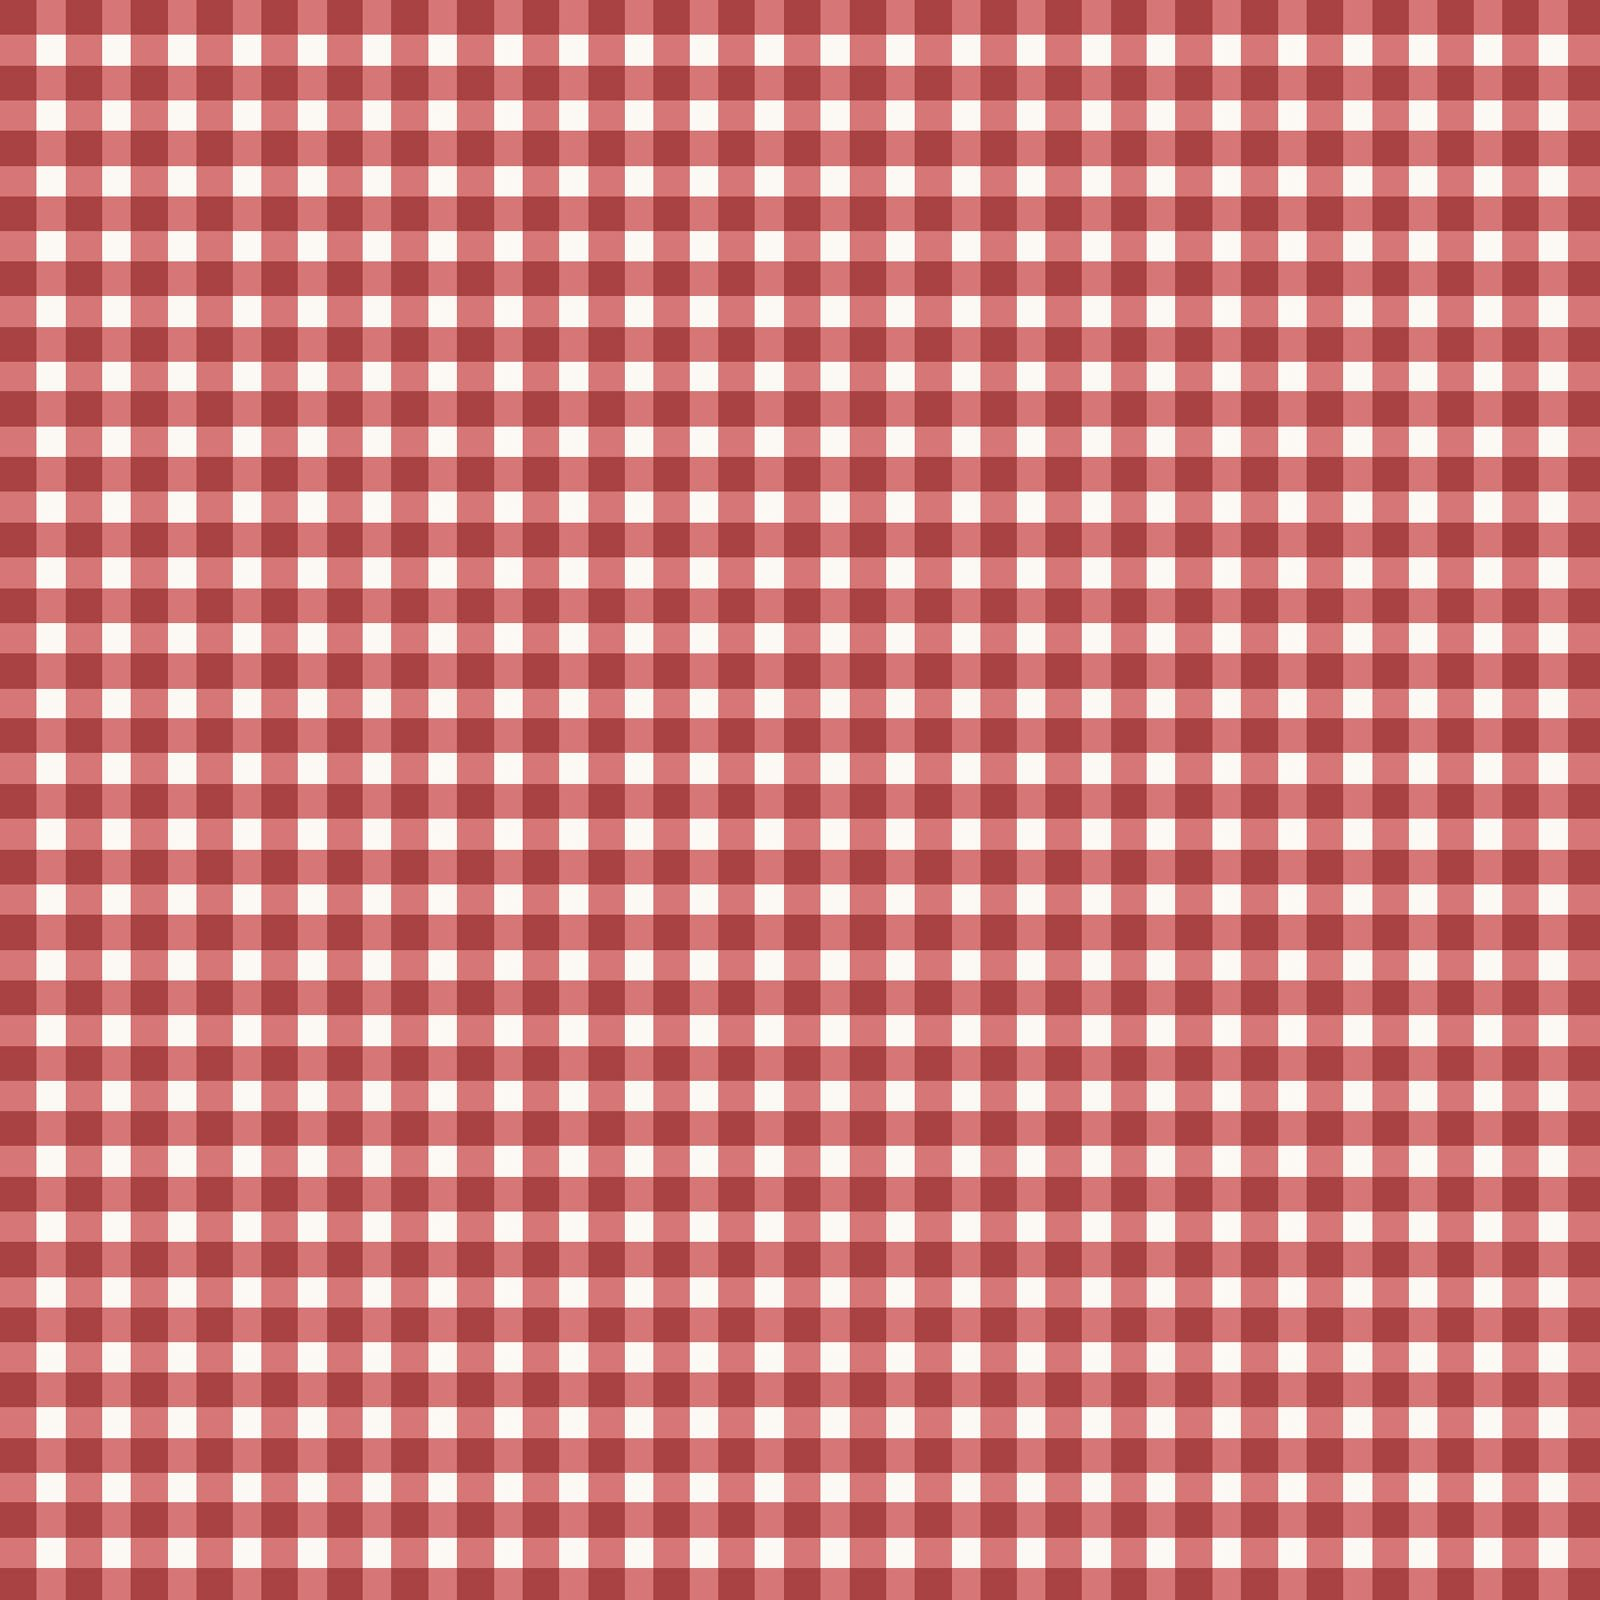 EESC-F610 R - CLASSIC CHECK FLANNEL RED